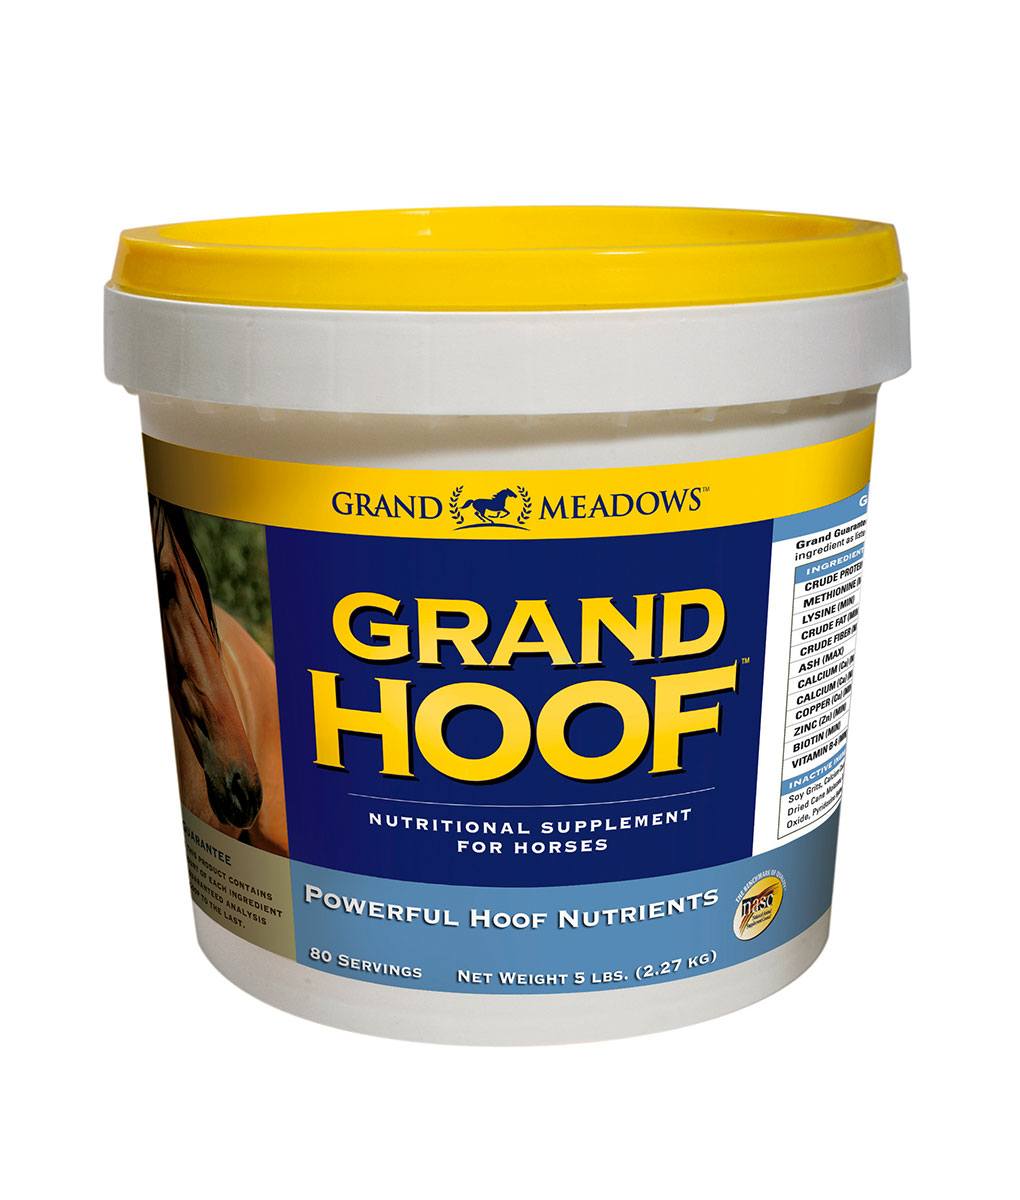 Grand Meadows Horse Hoof Supplement